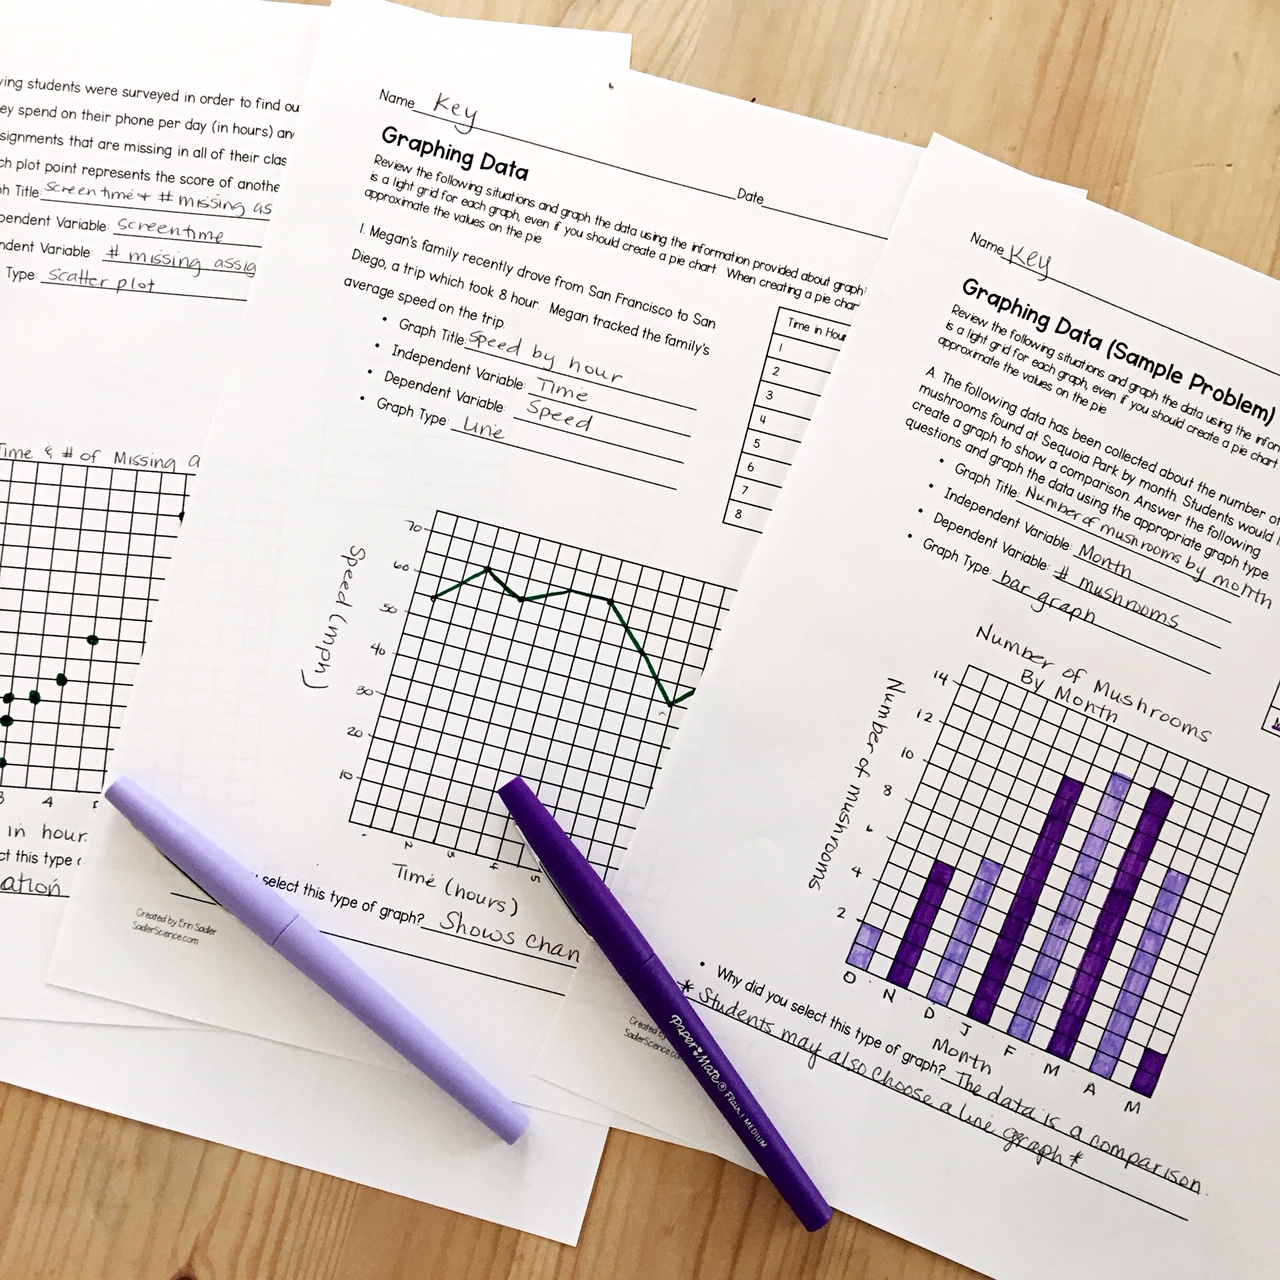 Graphing Data in an NGSS Classroom • Sadler Science [ 1280 x 1280 Pixel ]